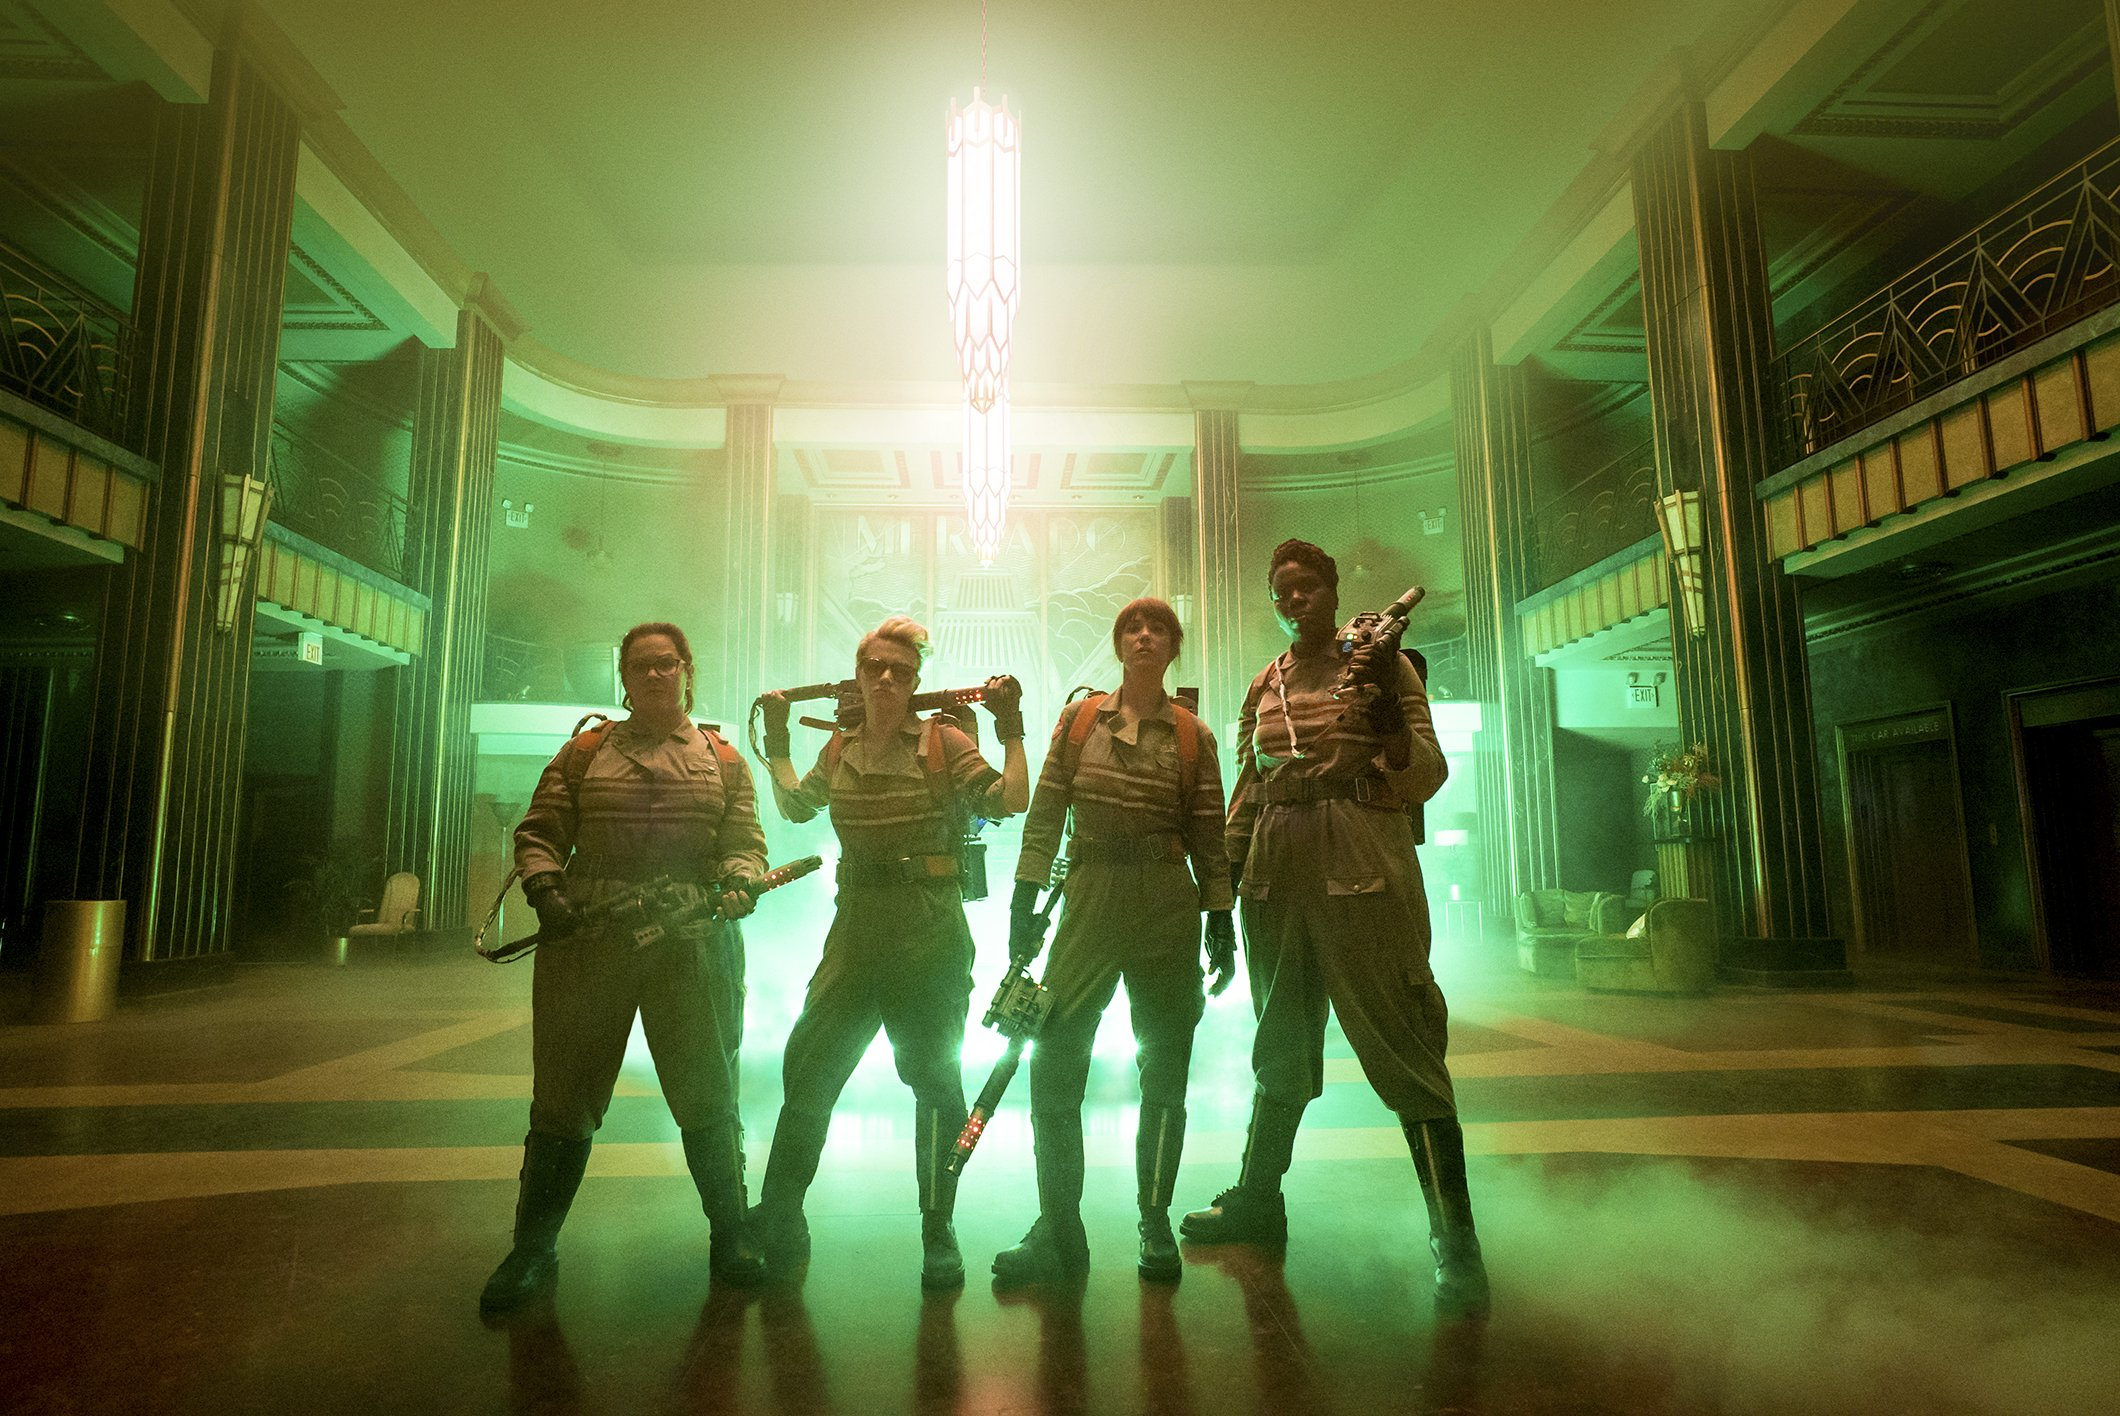 First Look At The All New Ghostbusters - OC Movie Reviews - Movie Reviews, Movie News, Documentary Reviews, Short Films, Short Film Reviews, Trailers, Movie Trailers, Interviews, film reviews, film news, hollywood, indie films, documentaries